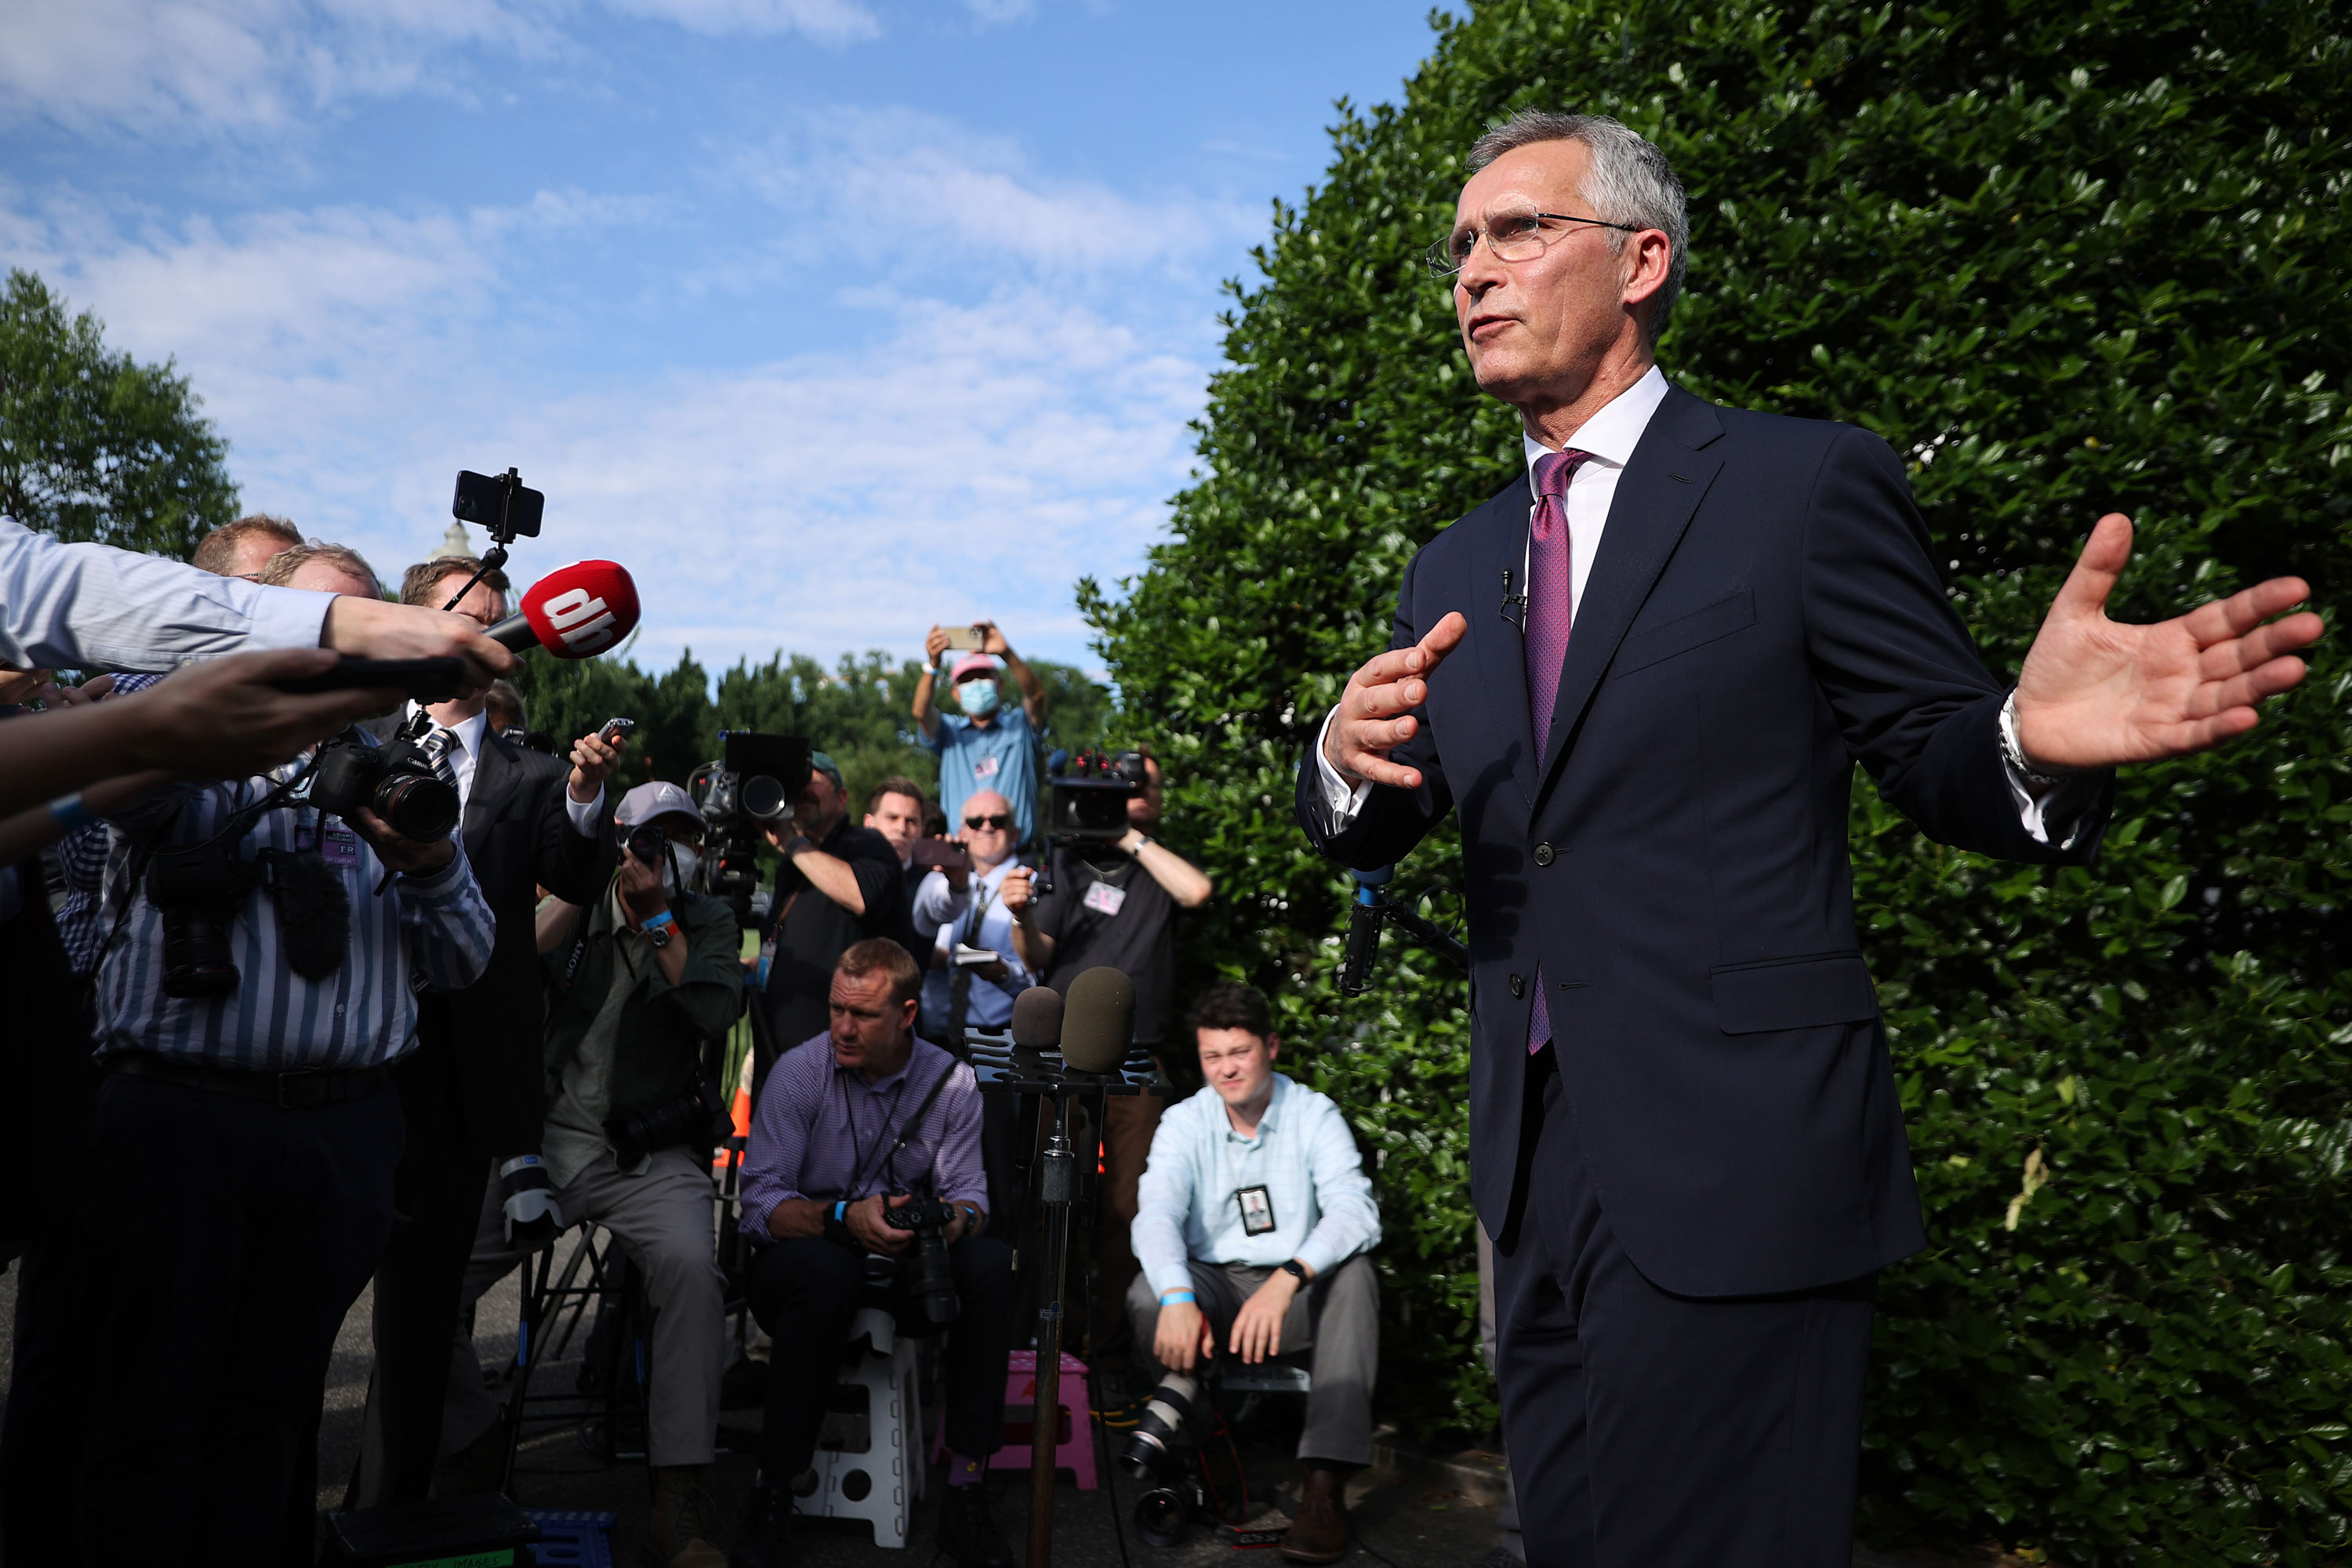 NATO Secretary General Jens Stoltenberg talks to reporters following a meeting with President Joe Biden at the White House on June 7 in Washington, DC.